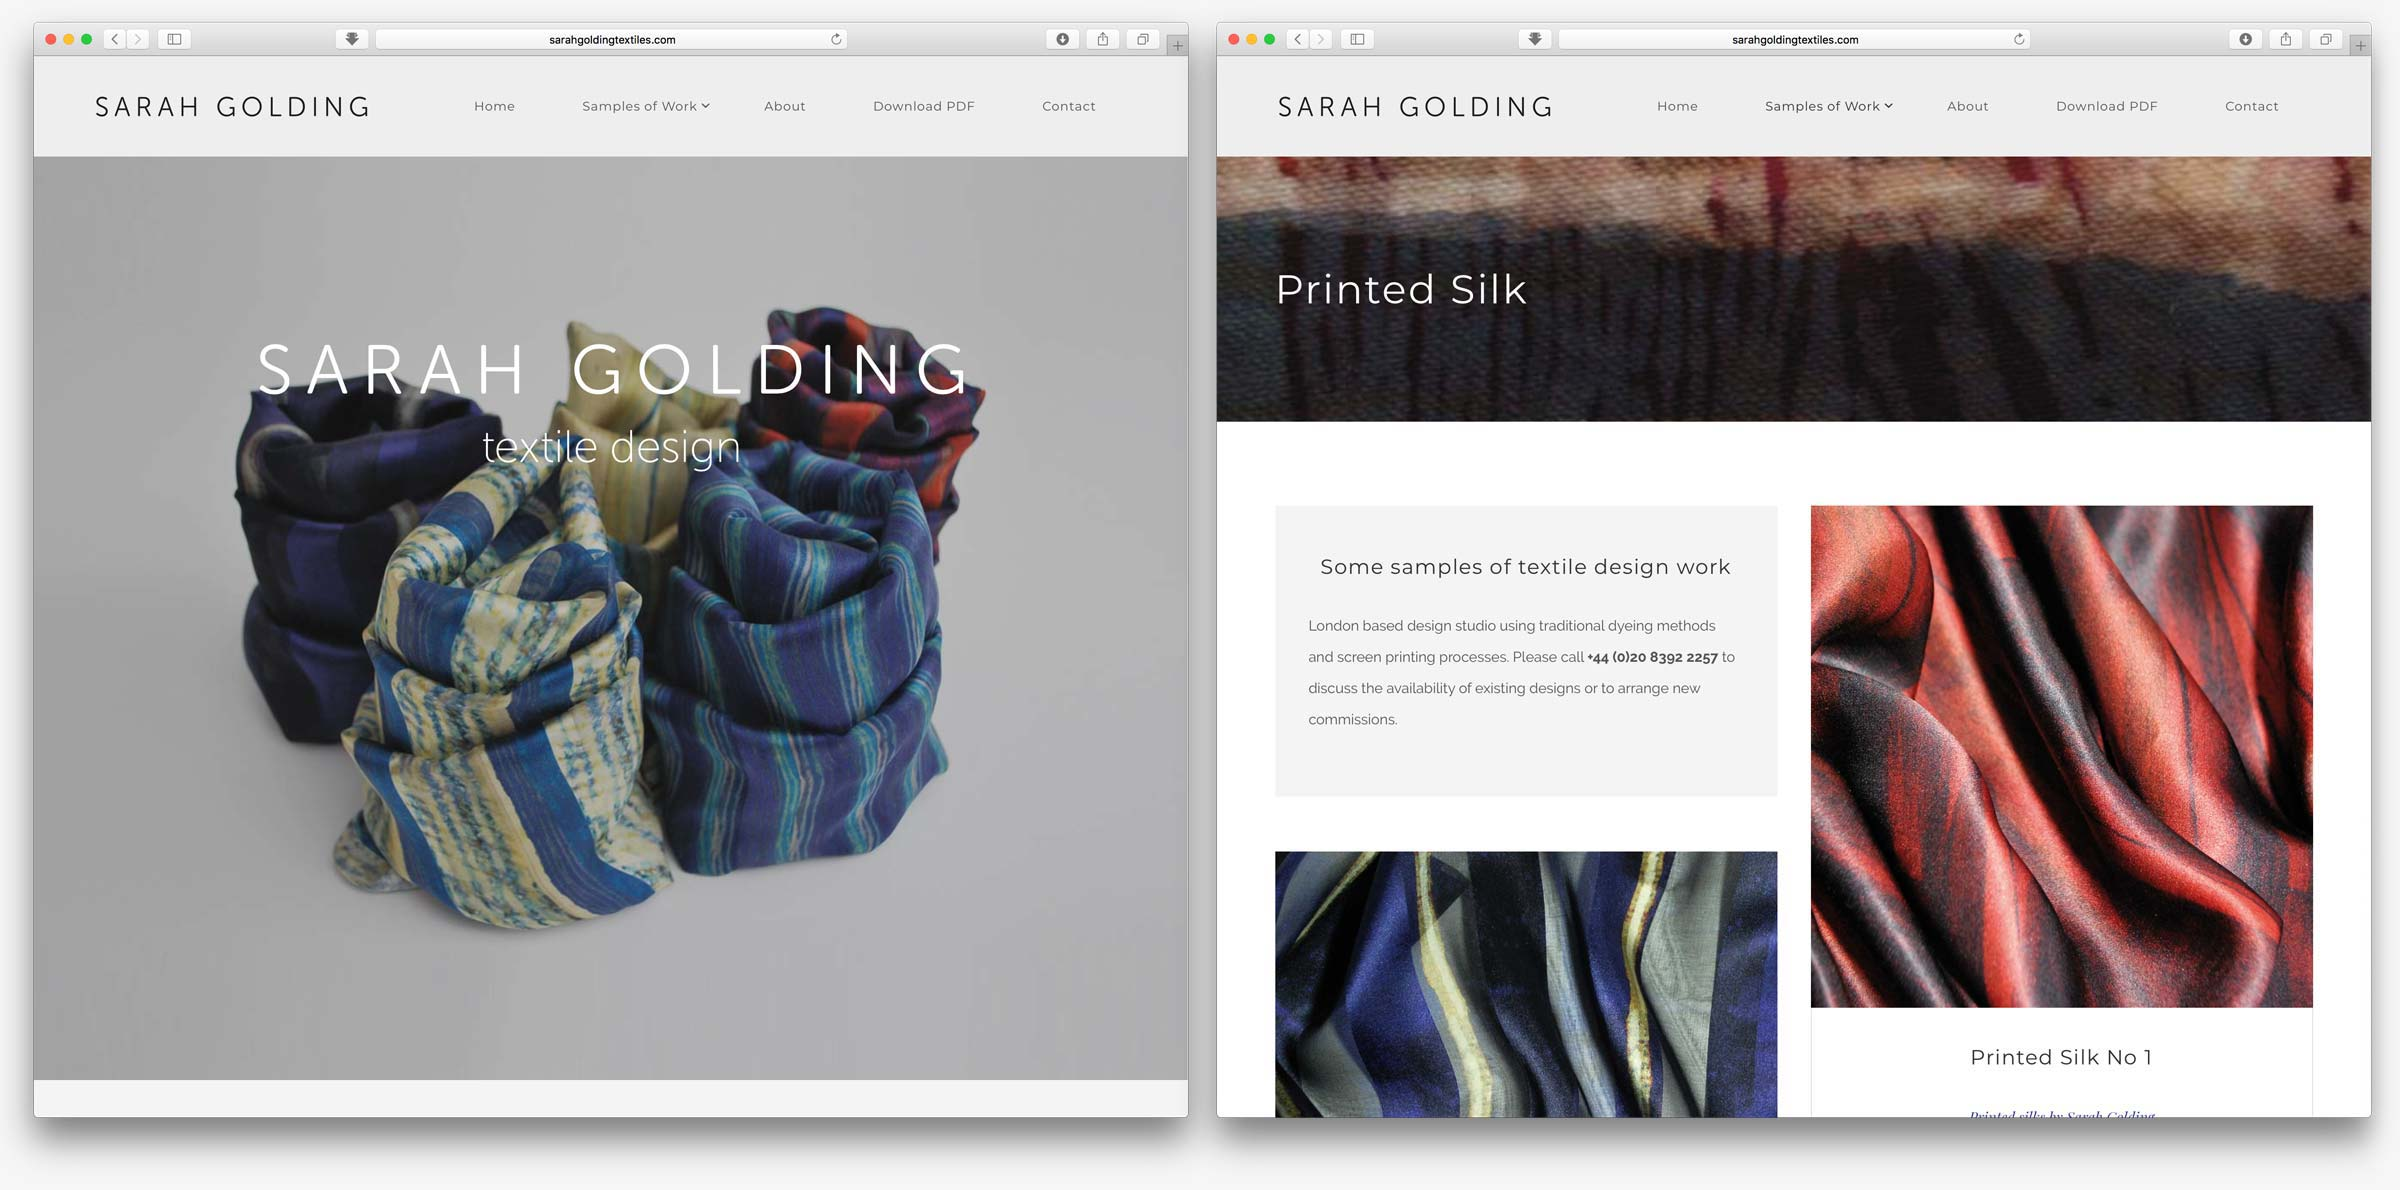 Sarah Golding Textile Design website